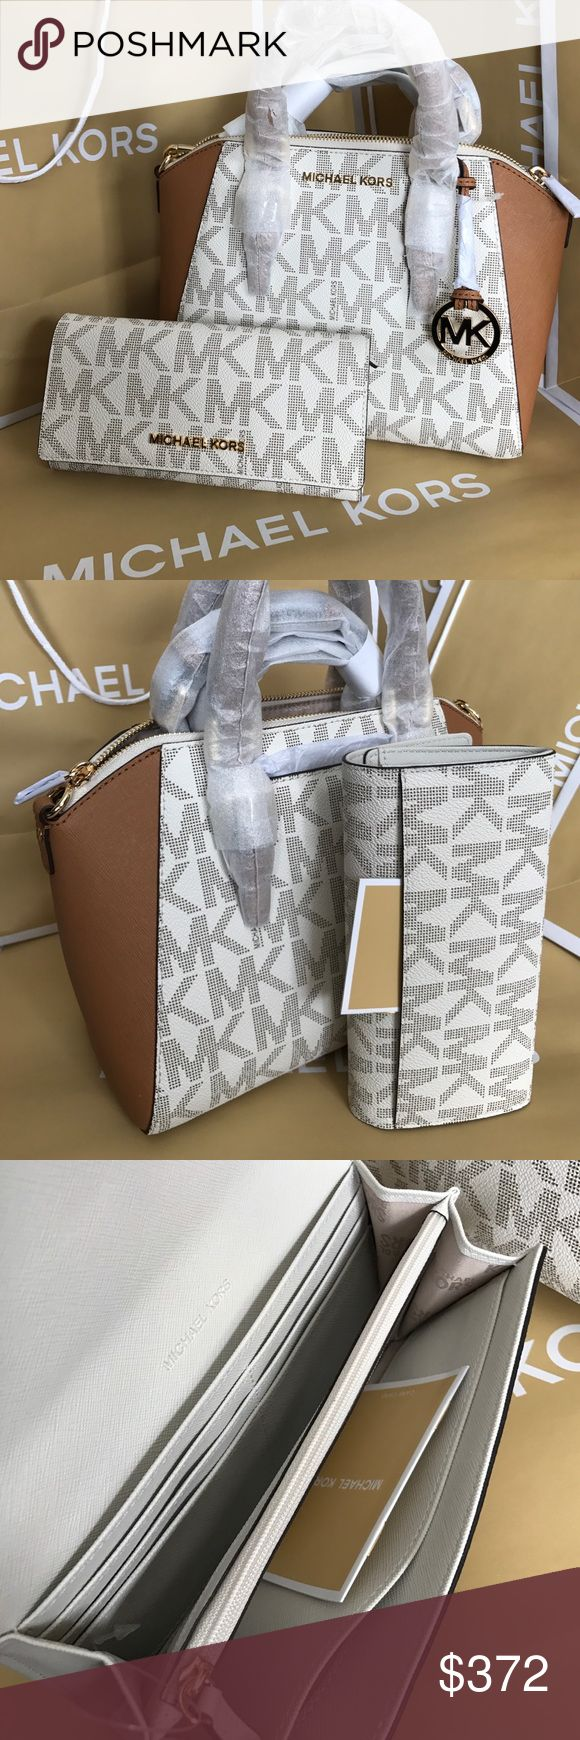 official michael kors outlet website yzik  Michael Kors Set 100% Authentic Michael Kors Purse Crossbody and Wallet,  both brand new